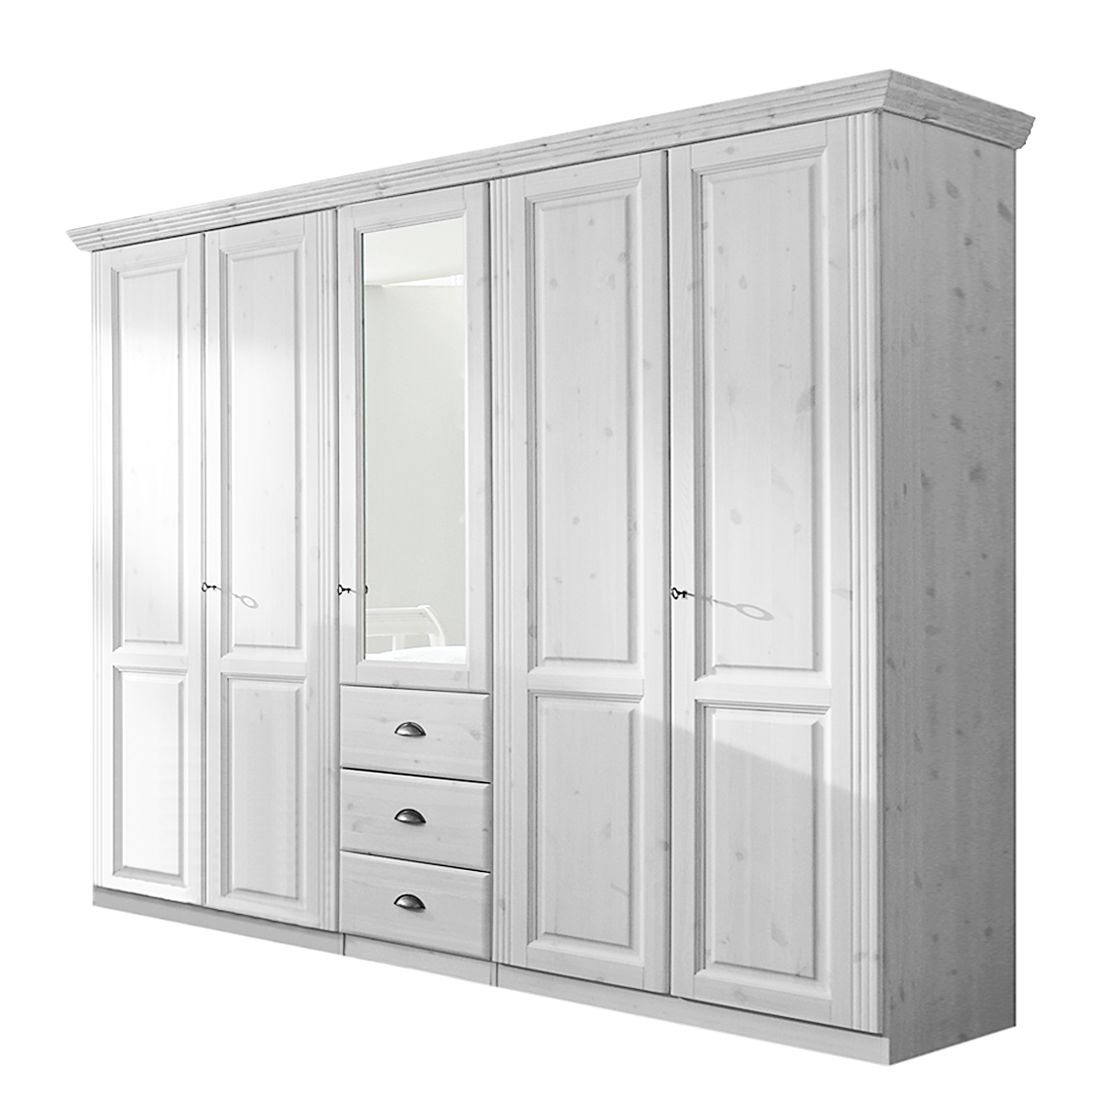 kleiderschrank magister kiefer massivholz wei 4home online bestellen. Black Bedroom Furniture Sets. Home Design Ideas